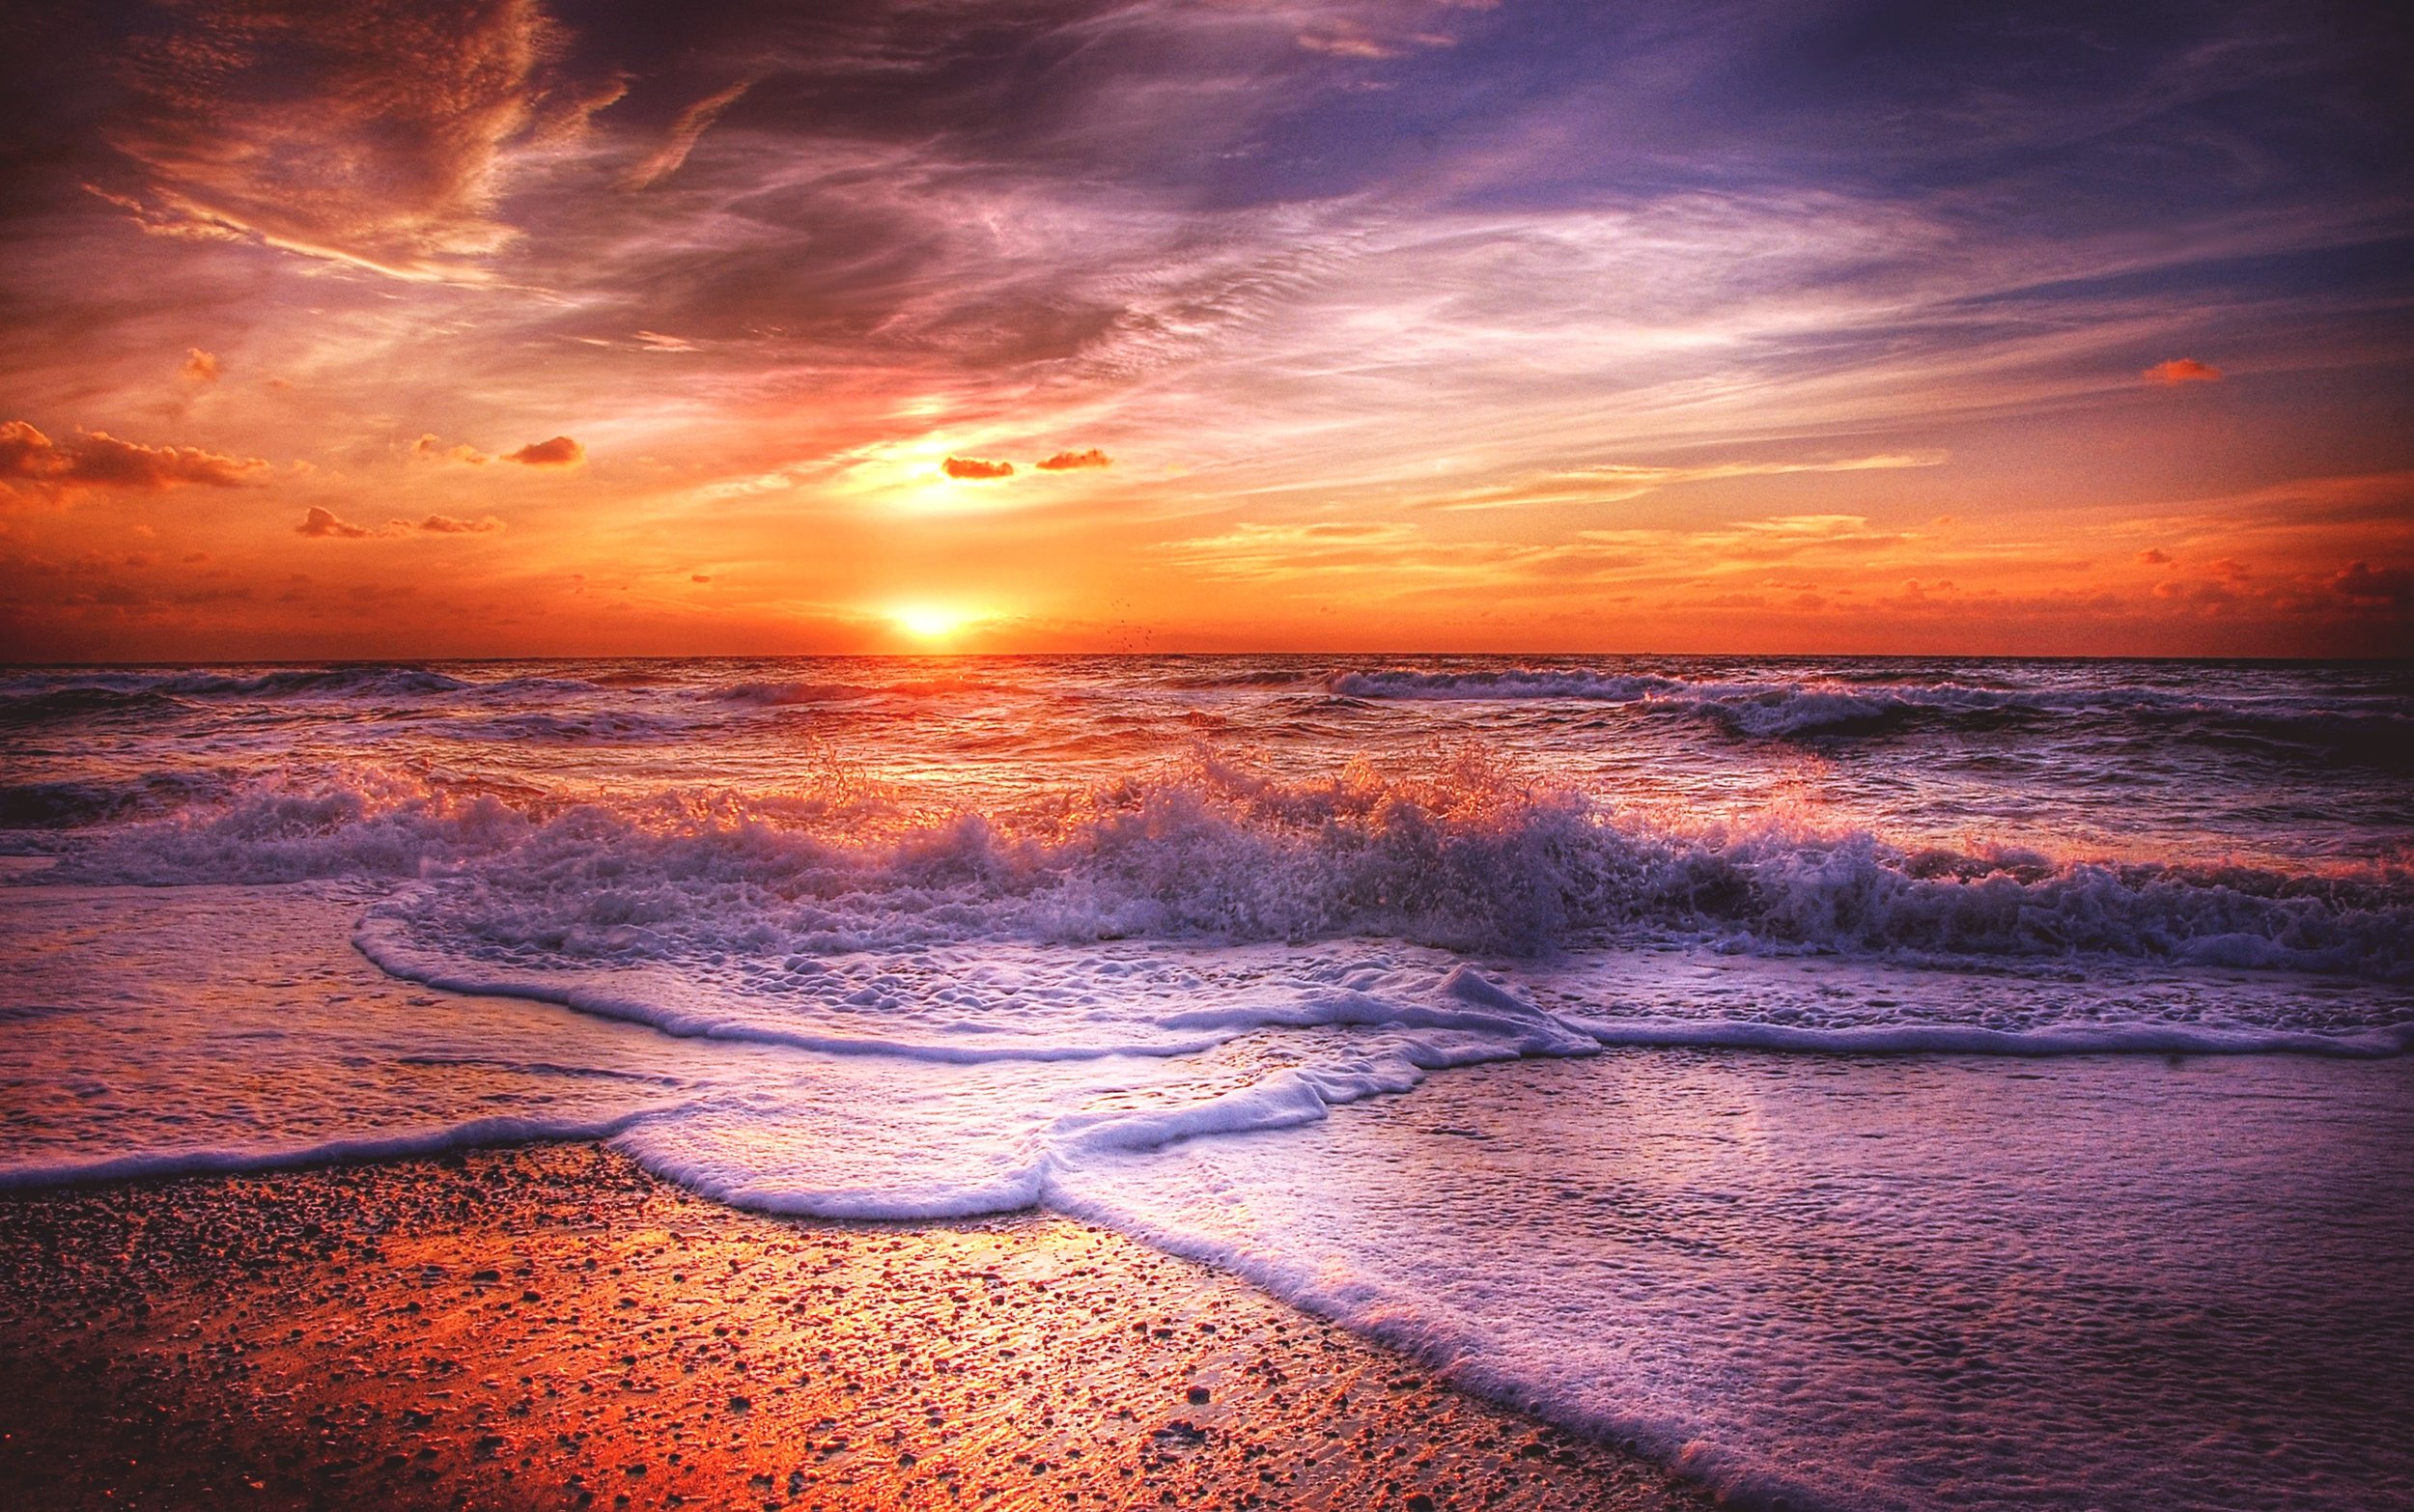 Honeymoon sunsets - How to absorb spectacular skies